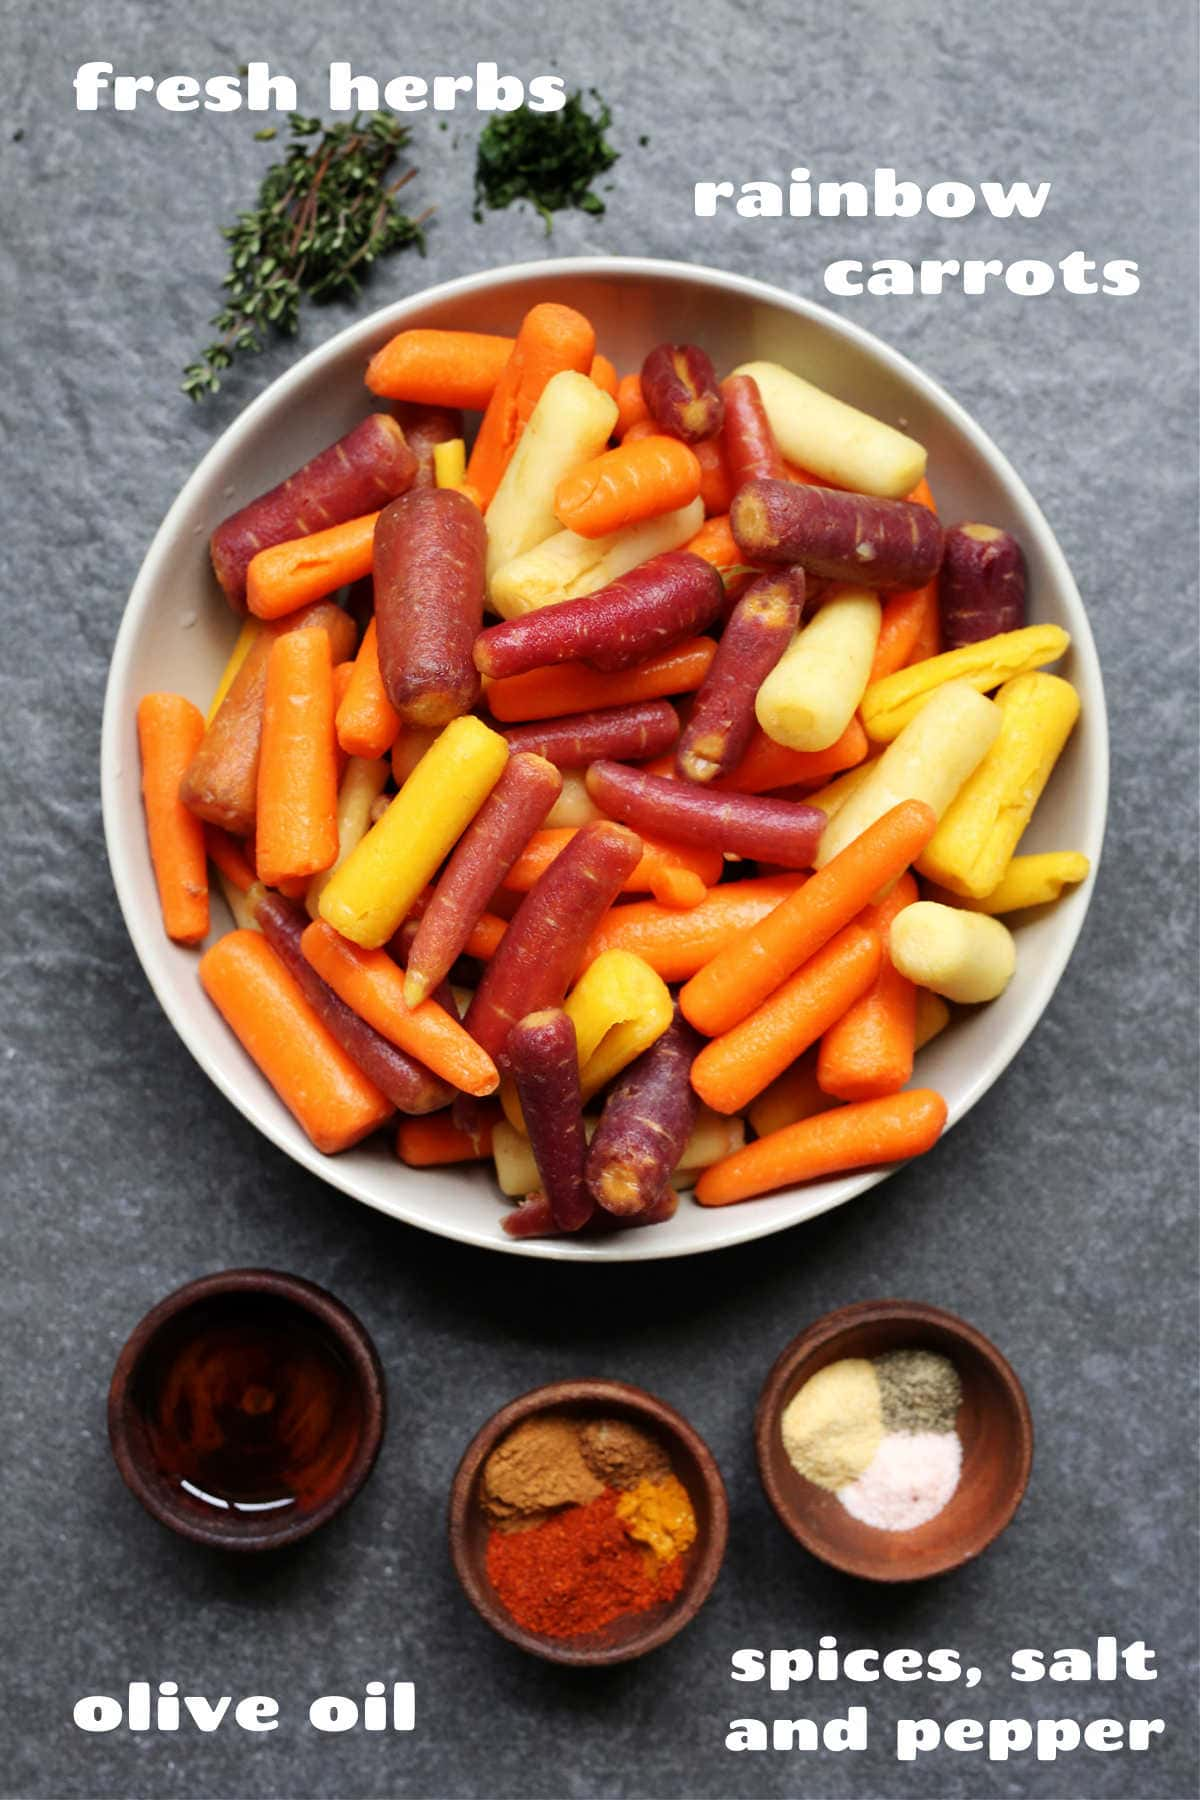 baby rainbow carrots evoo spices and herbs